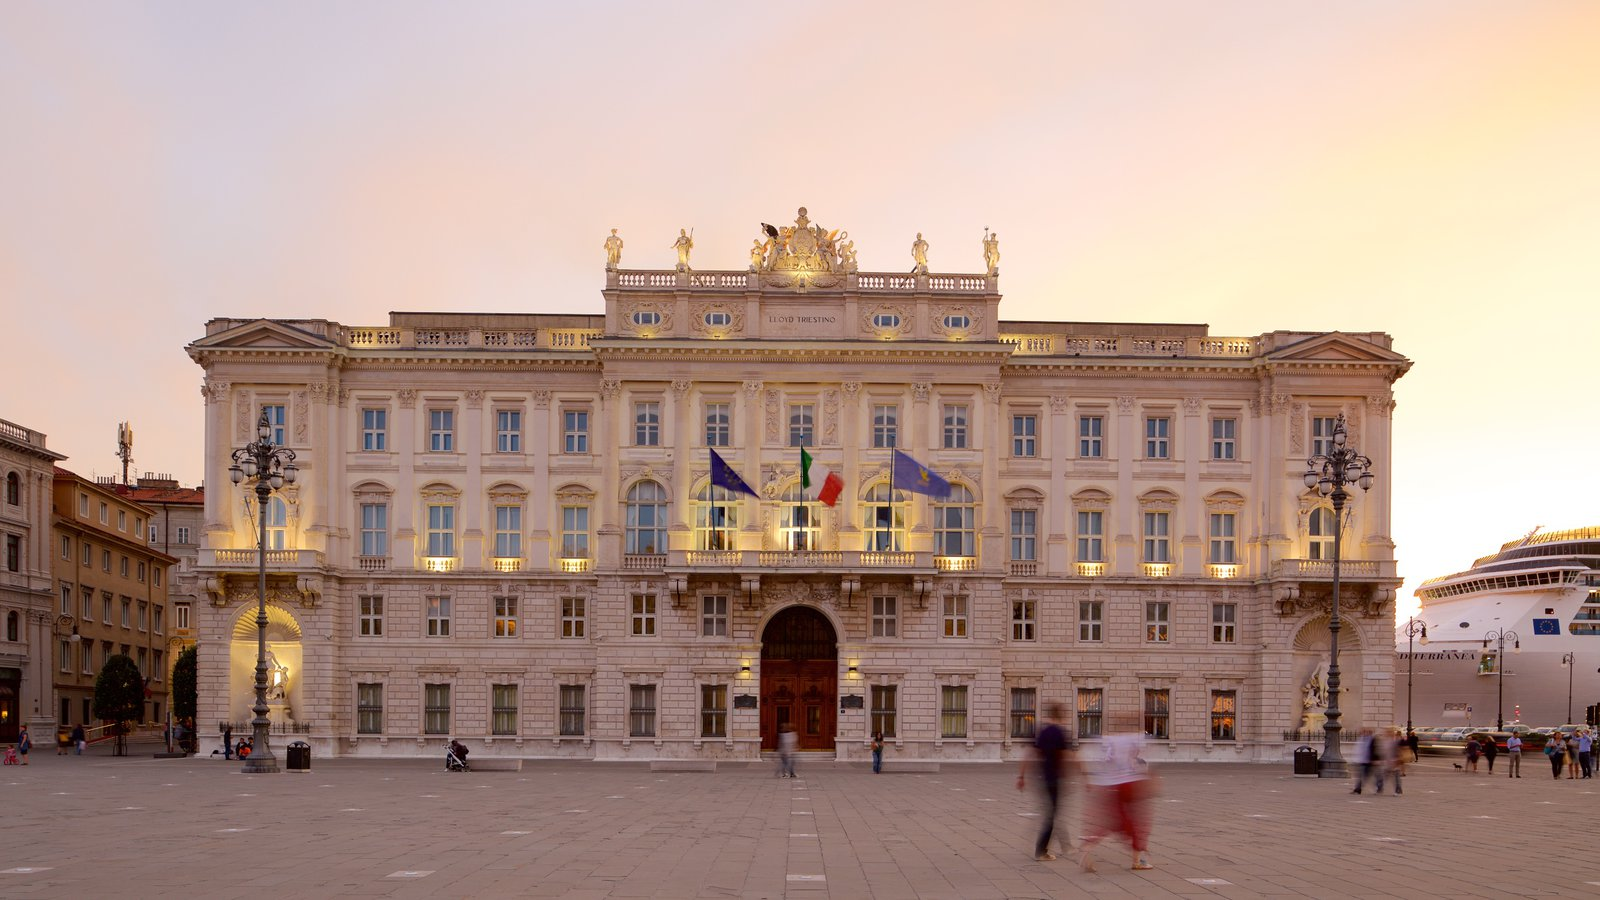 Piazza dell\'Unita featuring a sunset, a square or plaza and an administrative buidling